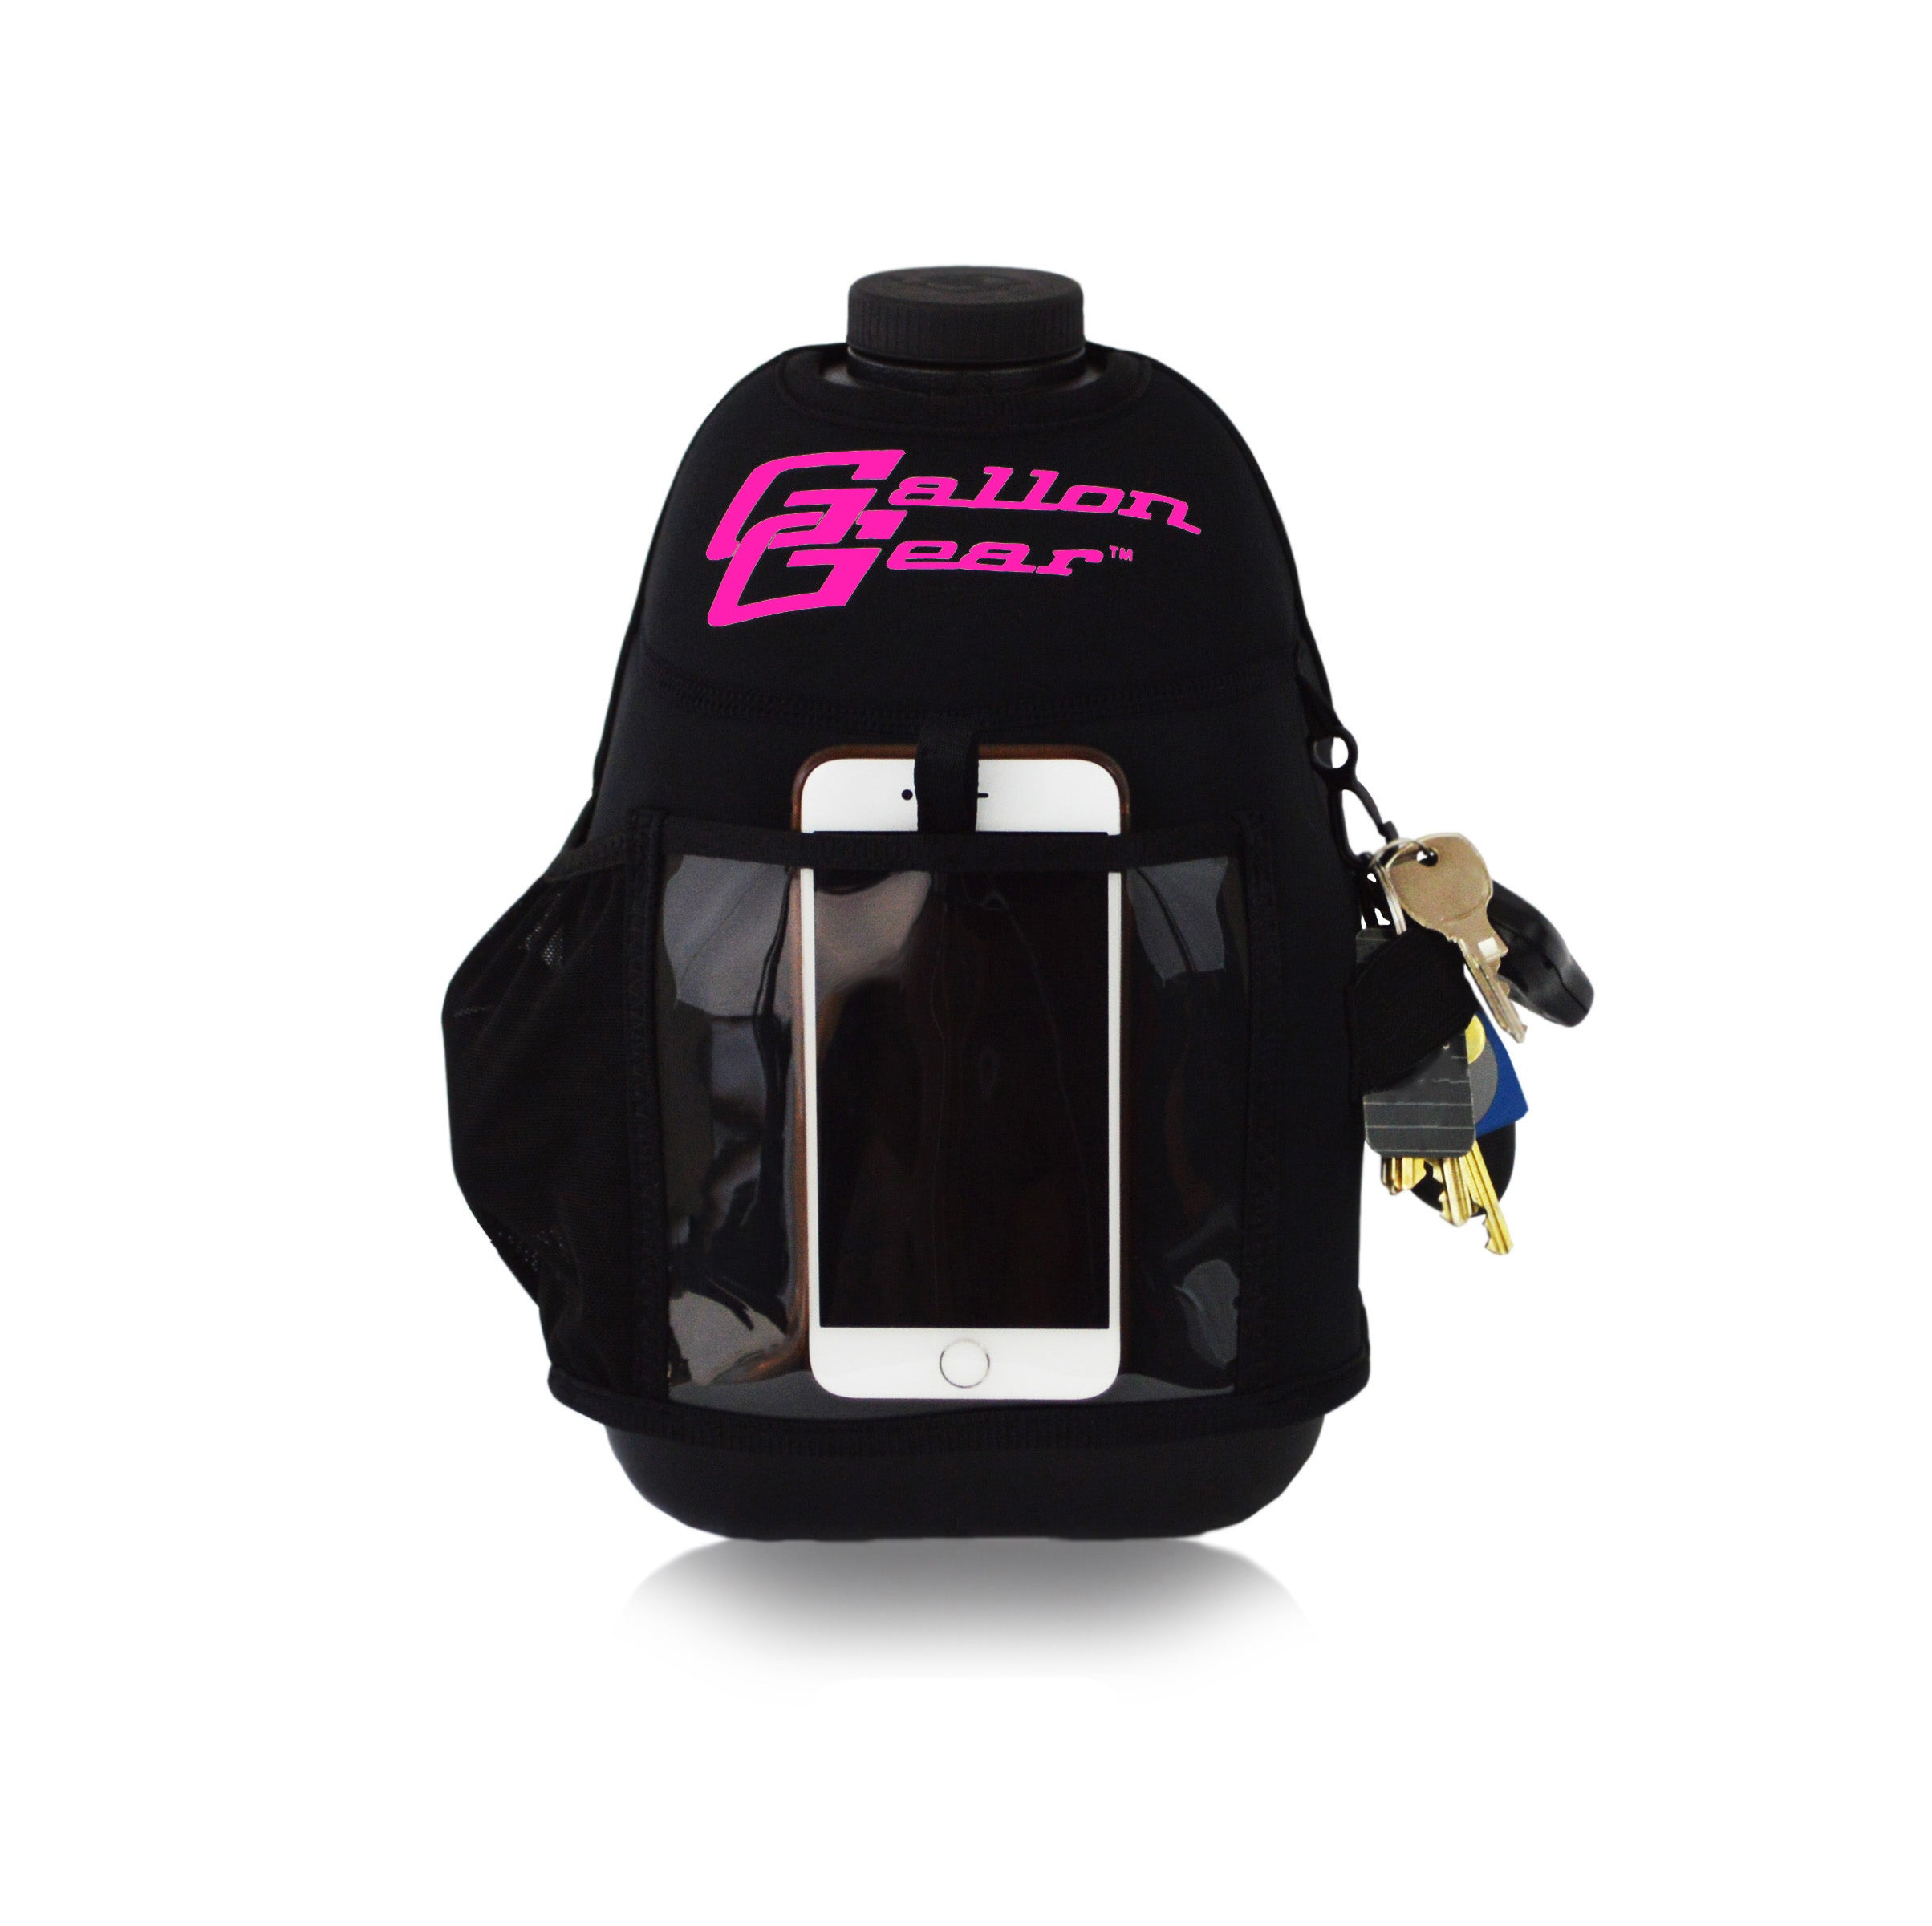 Black with Pink Logo Gallon Gear Fitness Hydration Cover